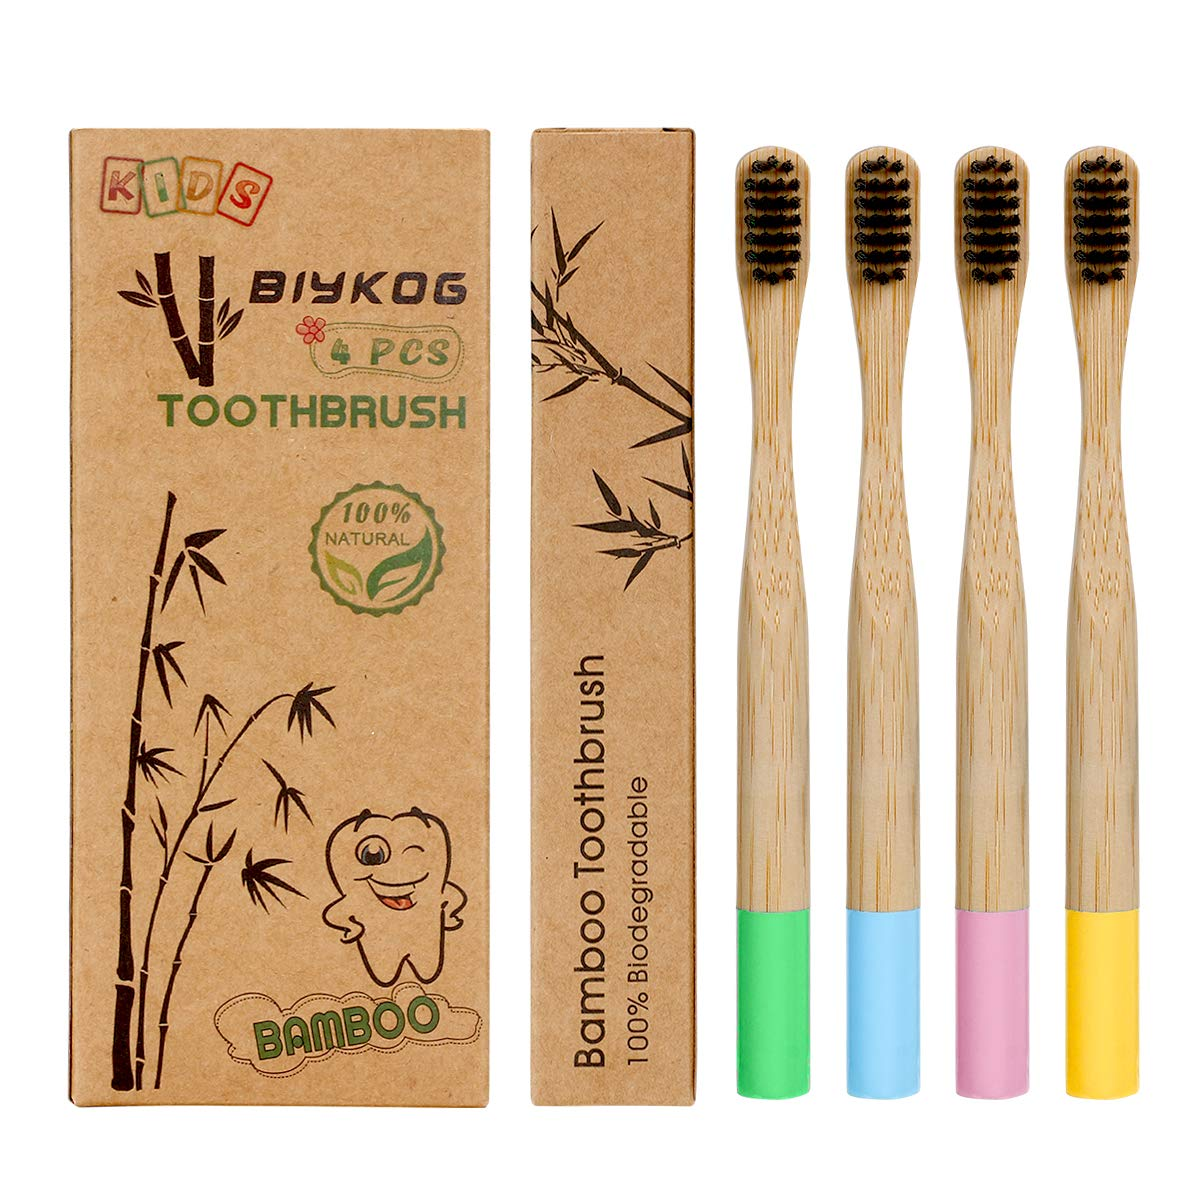 Biykog Kids Bamboo Toothbrushes, 4PCS Eco-Friendly Toothbrushes with 100% Biodegradable Charcoal Infused Bristles, BPA-Free Nature Soft Toothbrush for Children, Zero Waste Dental Care Product